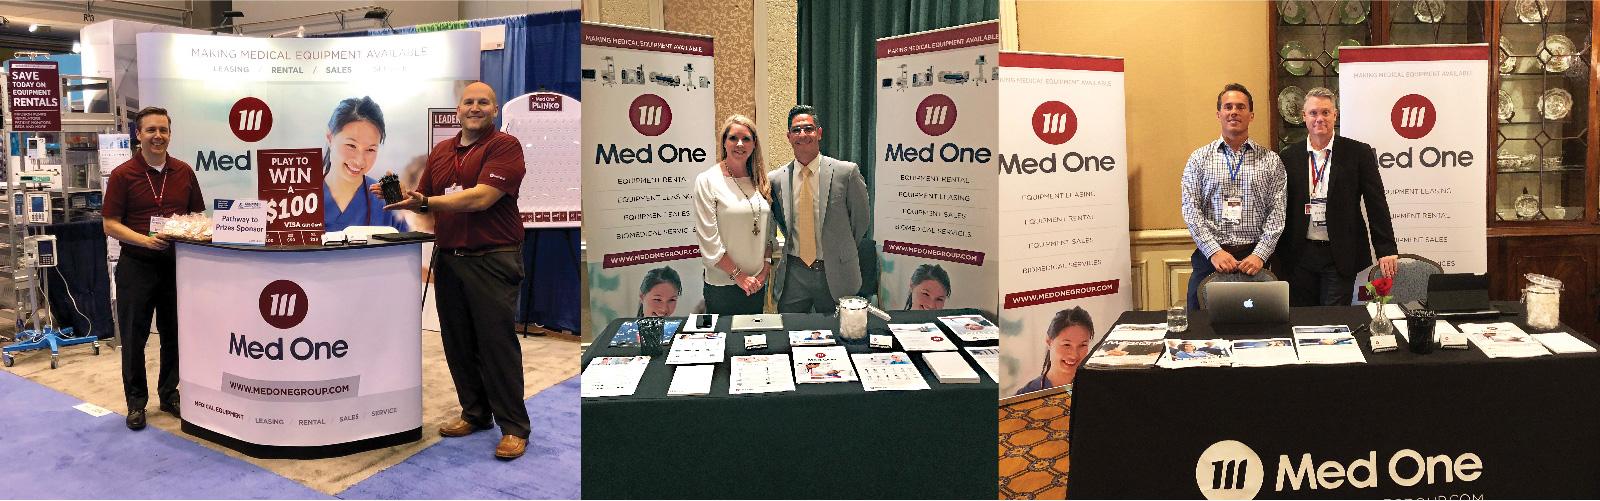 Med One Group attending Multiple Tradeshows